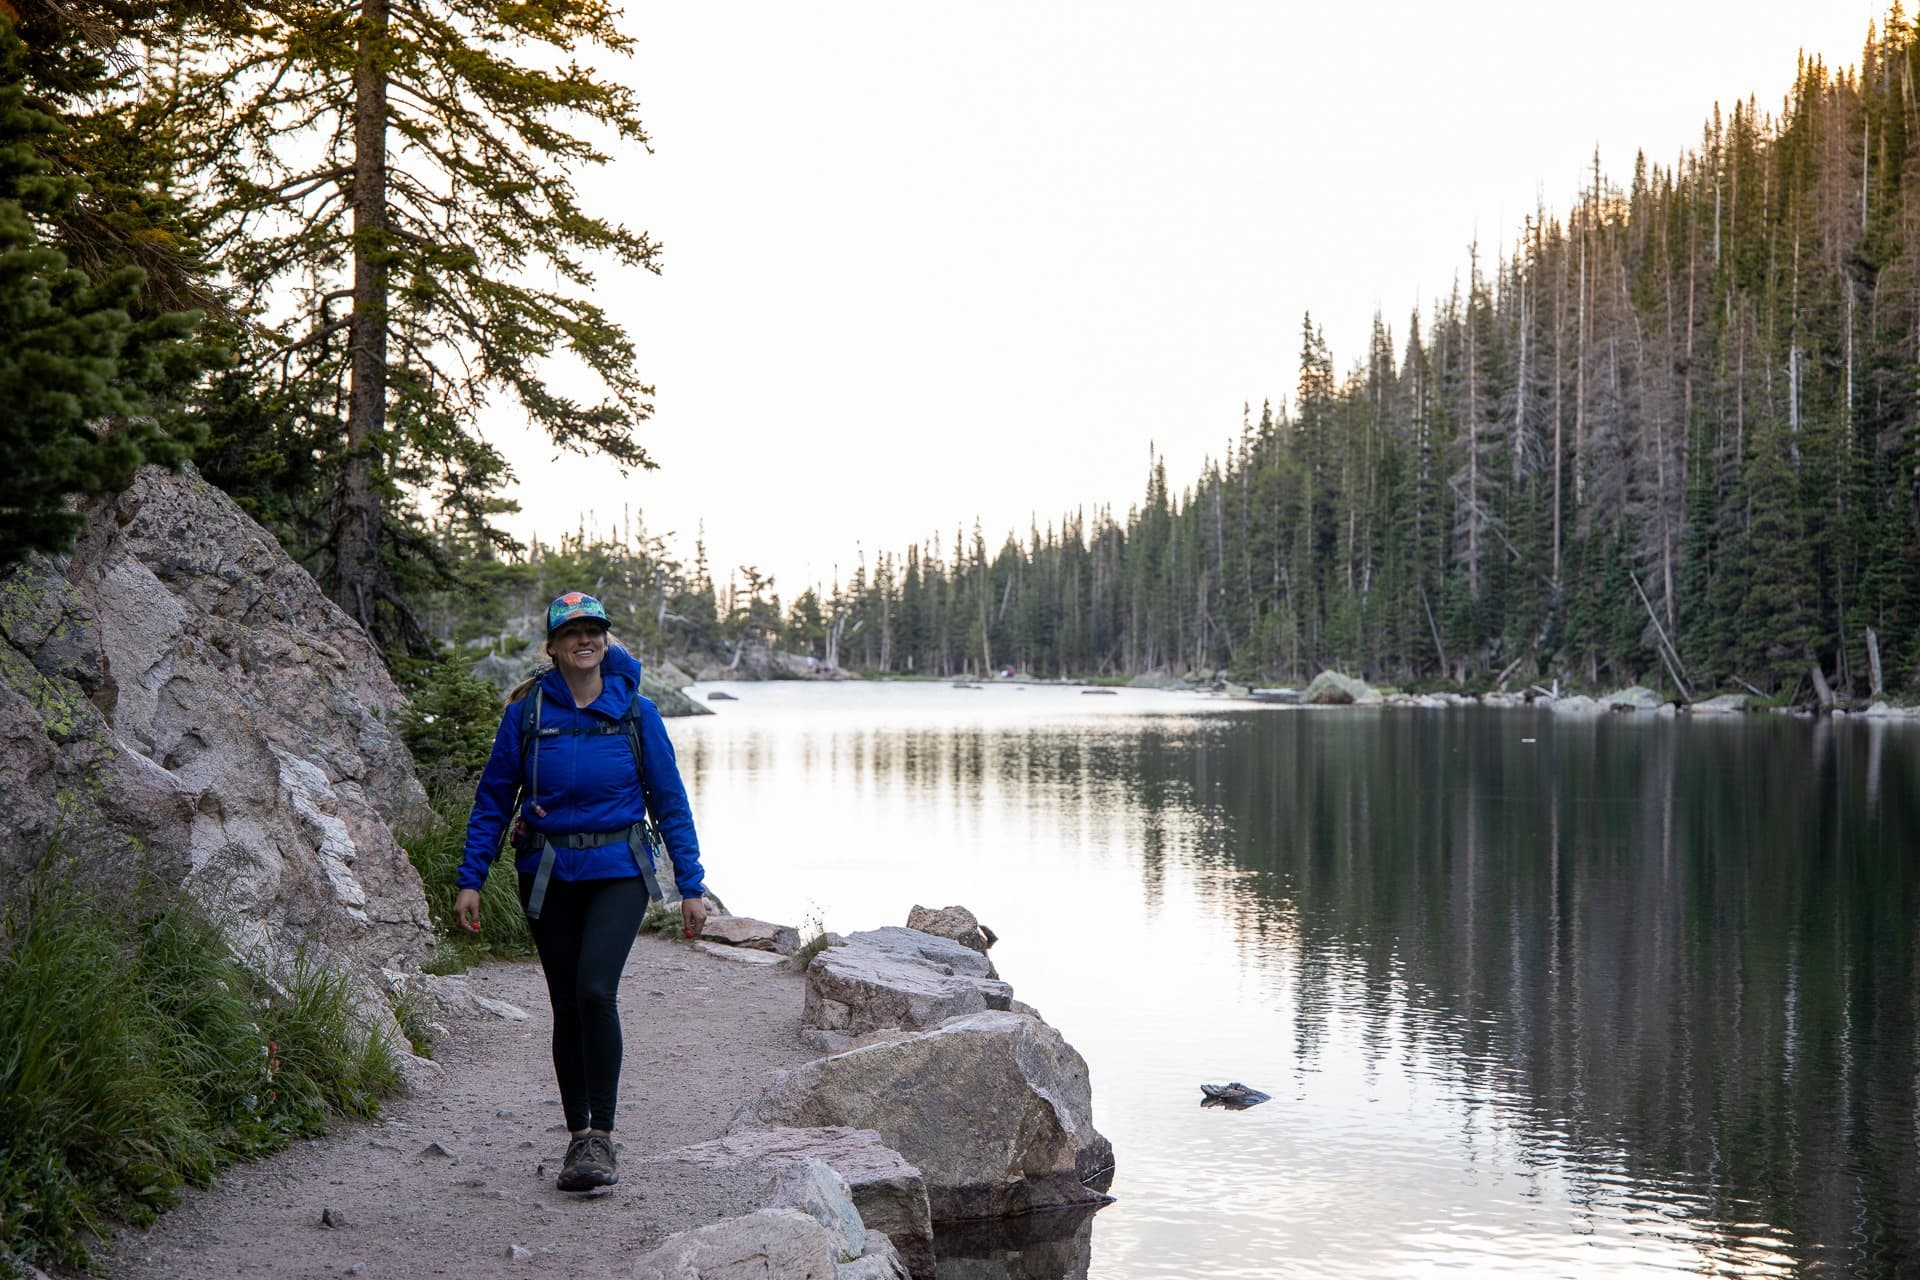 Solo Hiker //  Have you let your fear of hiking alone keep you indoors? Conquer those fears on your first solo hike with these tips to stay safe & feel confident.